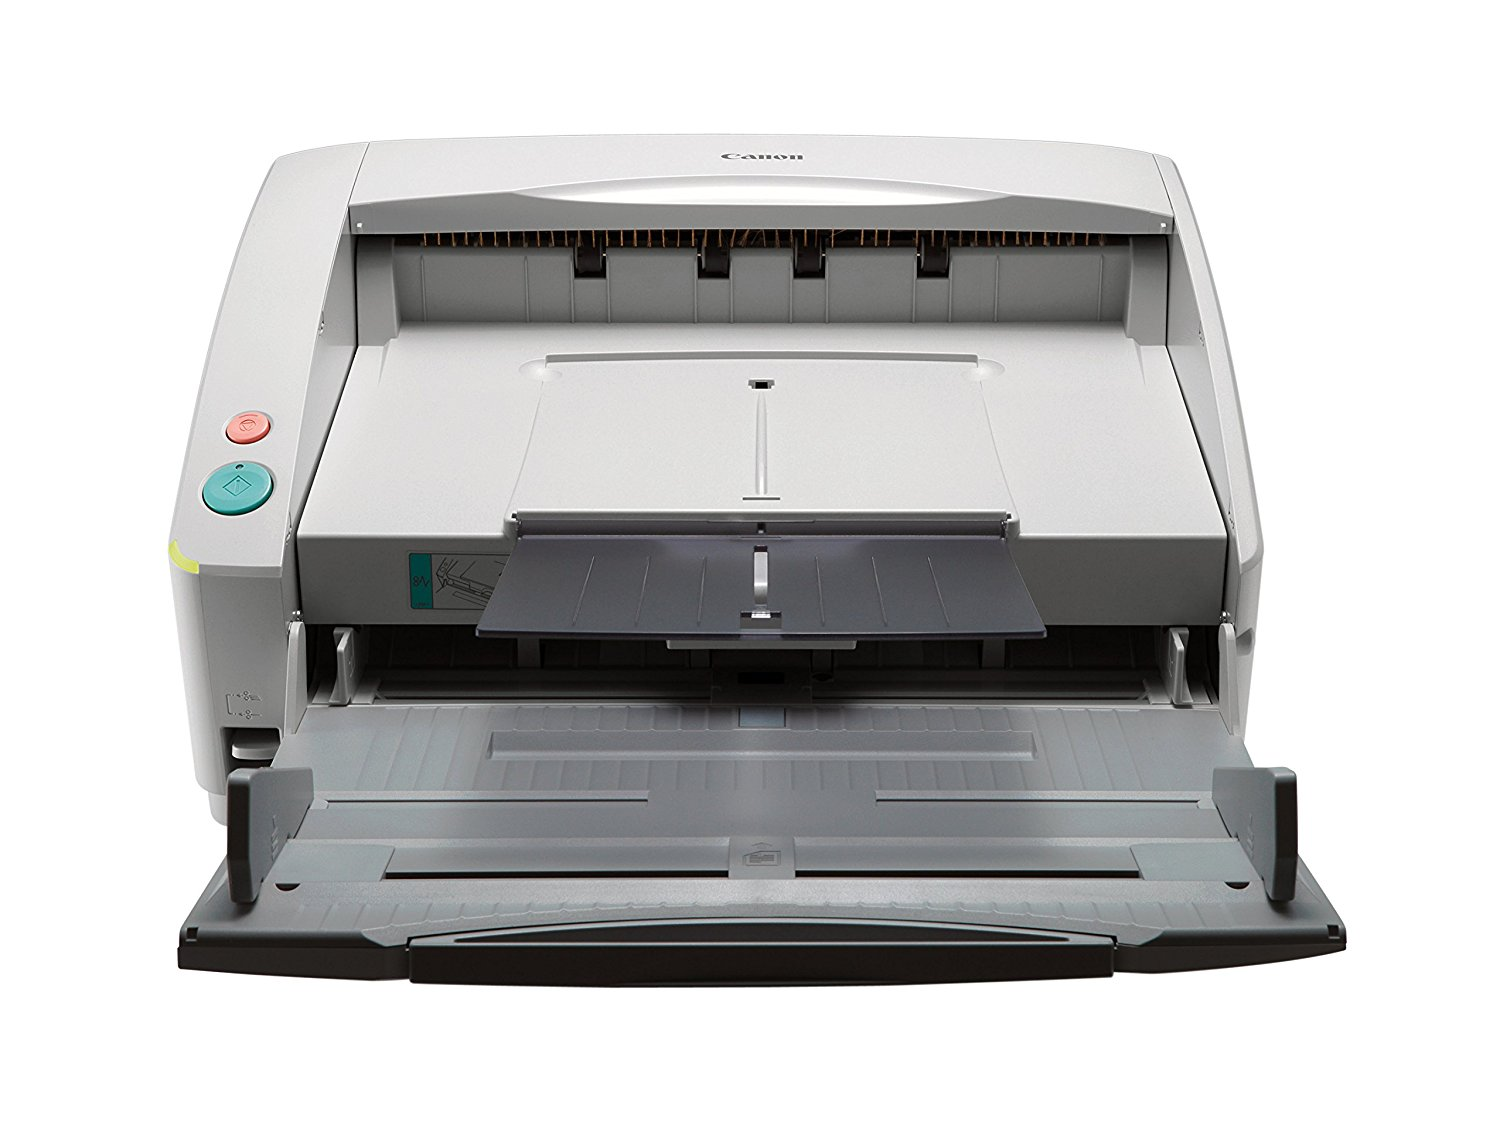 Canon DR6030C A3 document Scanner